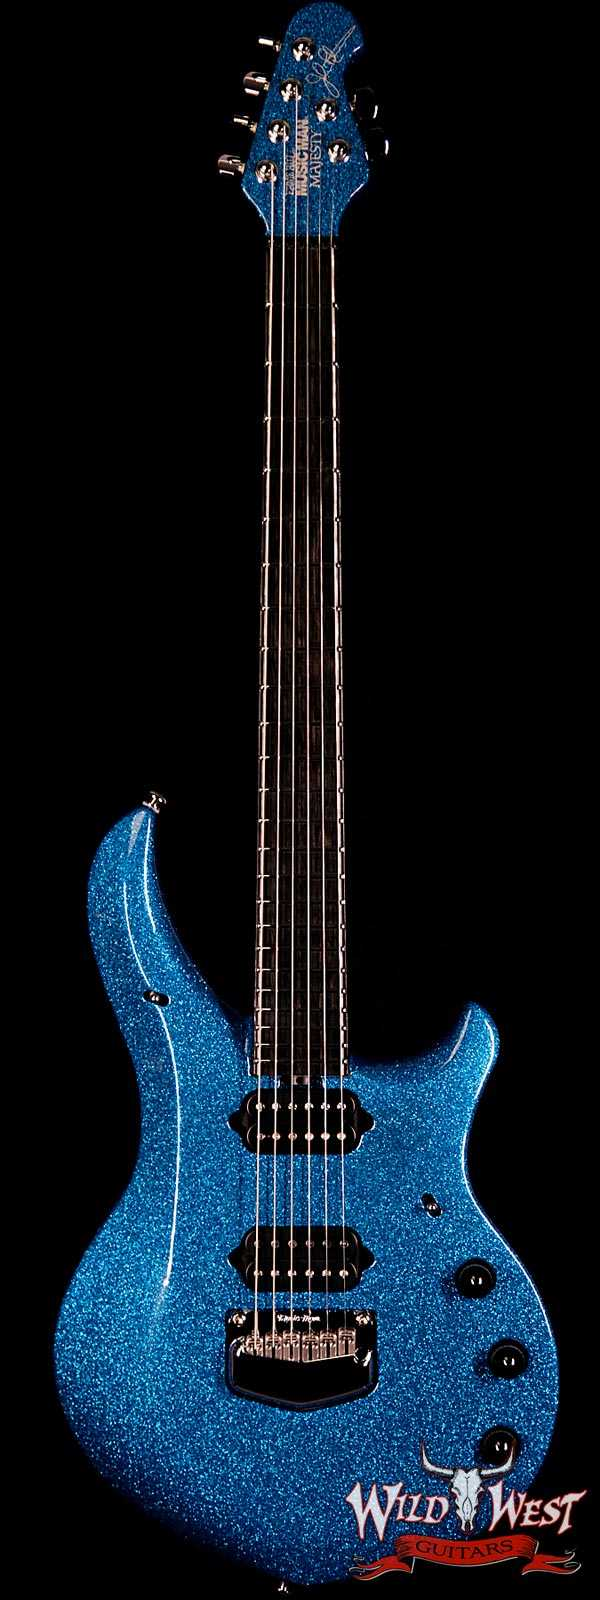 Ernie Ball Music Man BFR Limited Edition John Petrucci Signed Majesty # 96 of 118 Marine Blue Sparkle